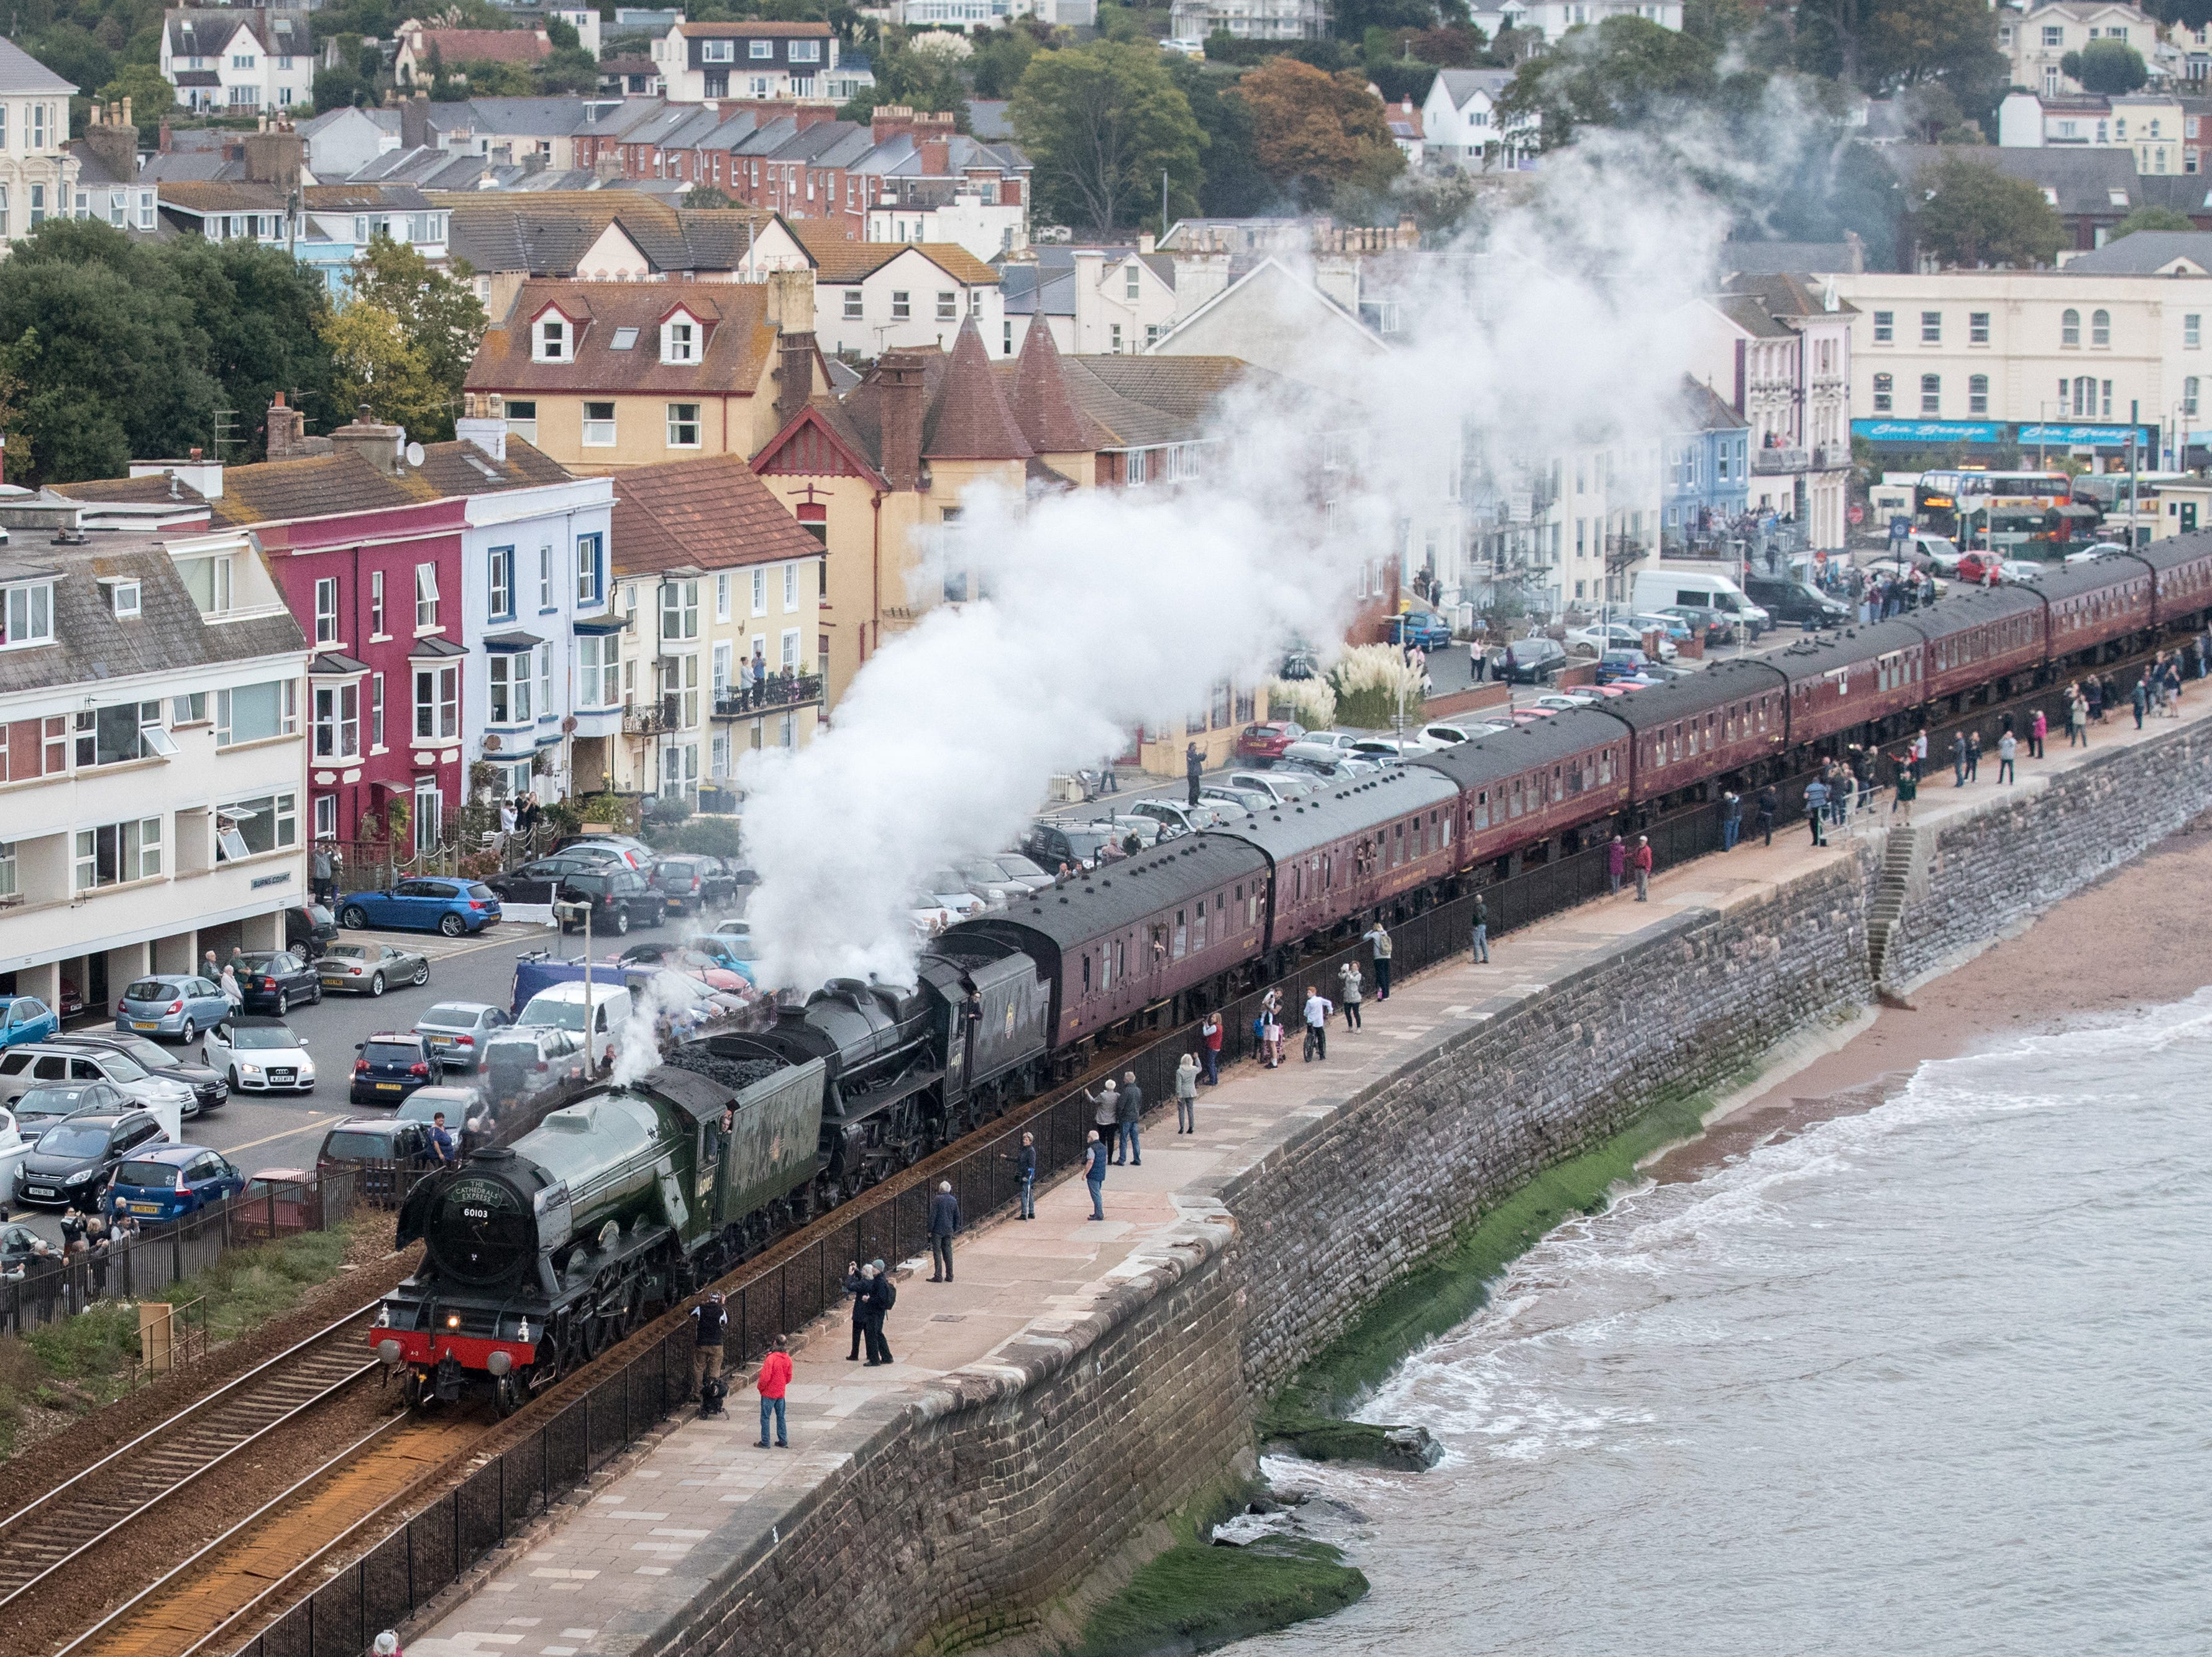 The Flying Scotsman steam locomotive, front, and the Black Five steam locomotive pass Dawlish on its way to Penzance, on Oct. 4, 2018, in Devon, England.